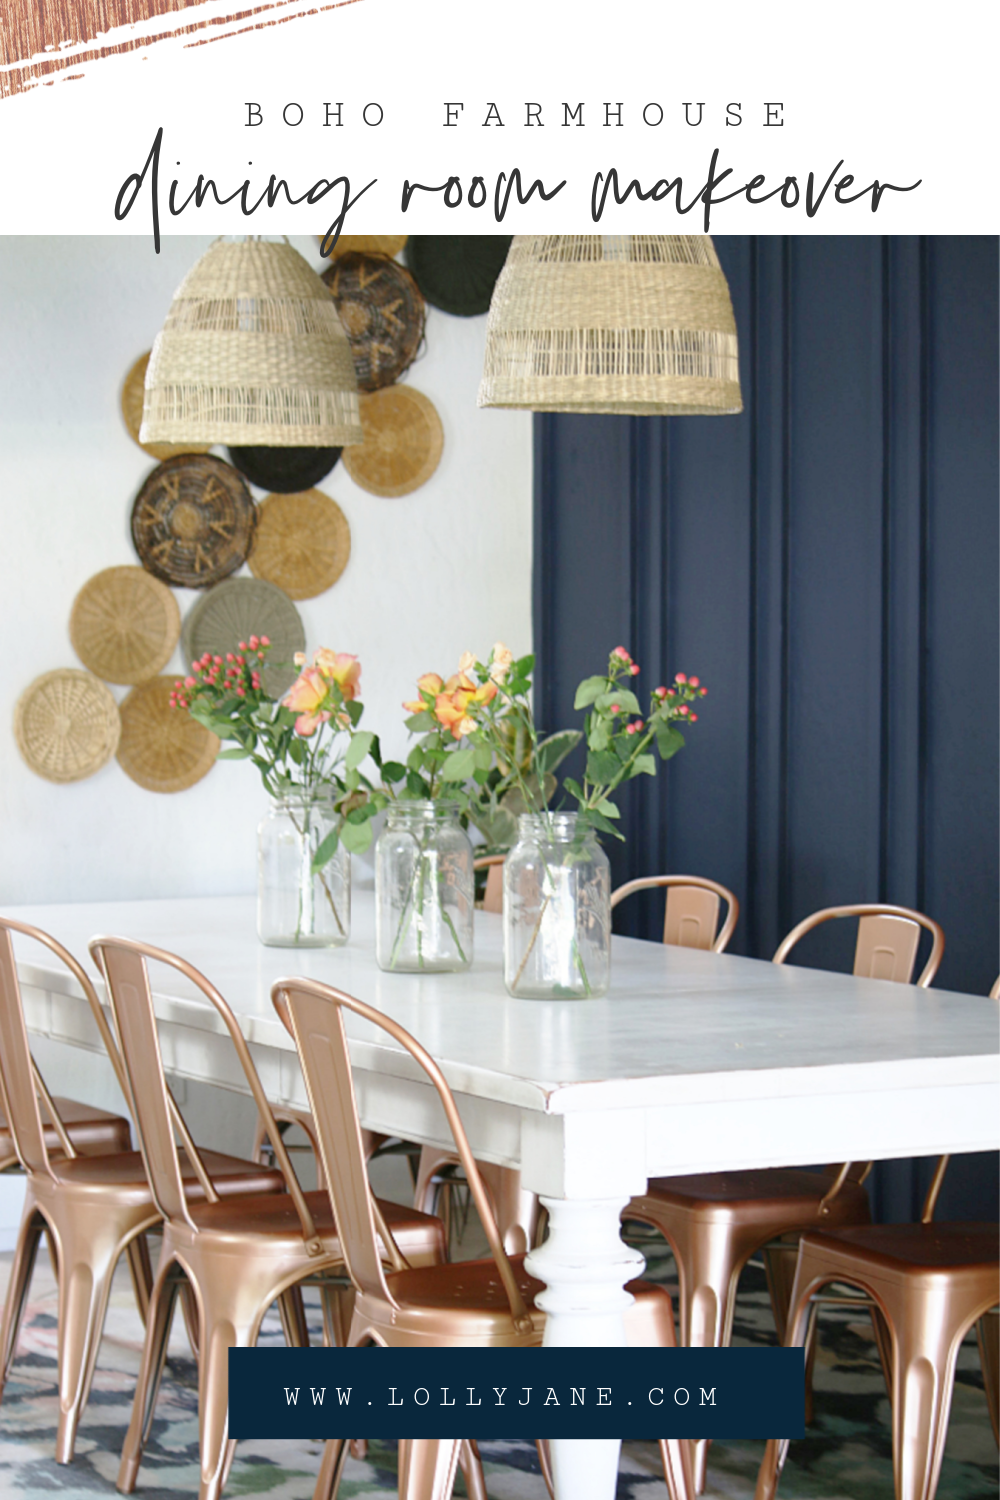 Lots of easy boho dining room decor ideas. We made this whole room over for just over $200!! #bohodecor #bohodiningroom #bohofarmhousedecor #diningroommakeover #basketwall #paintedchairs